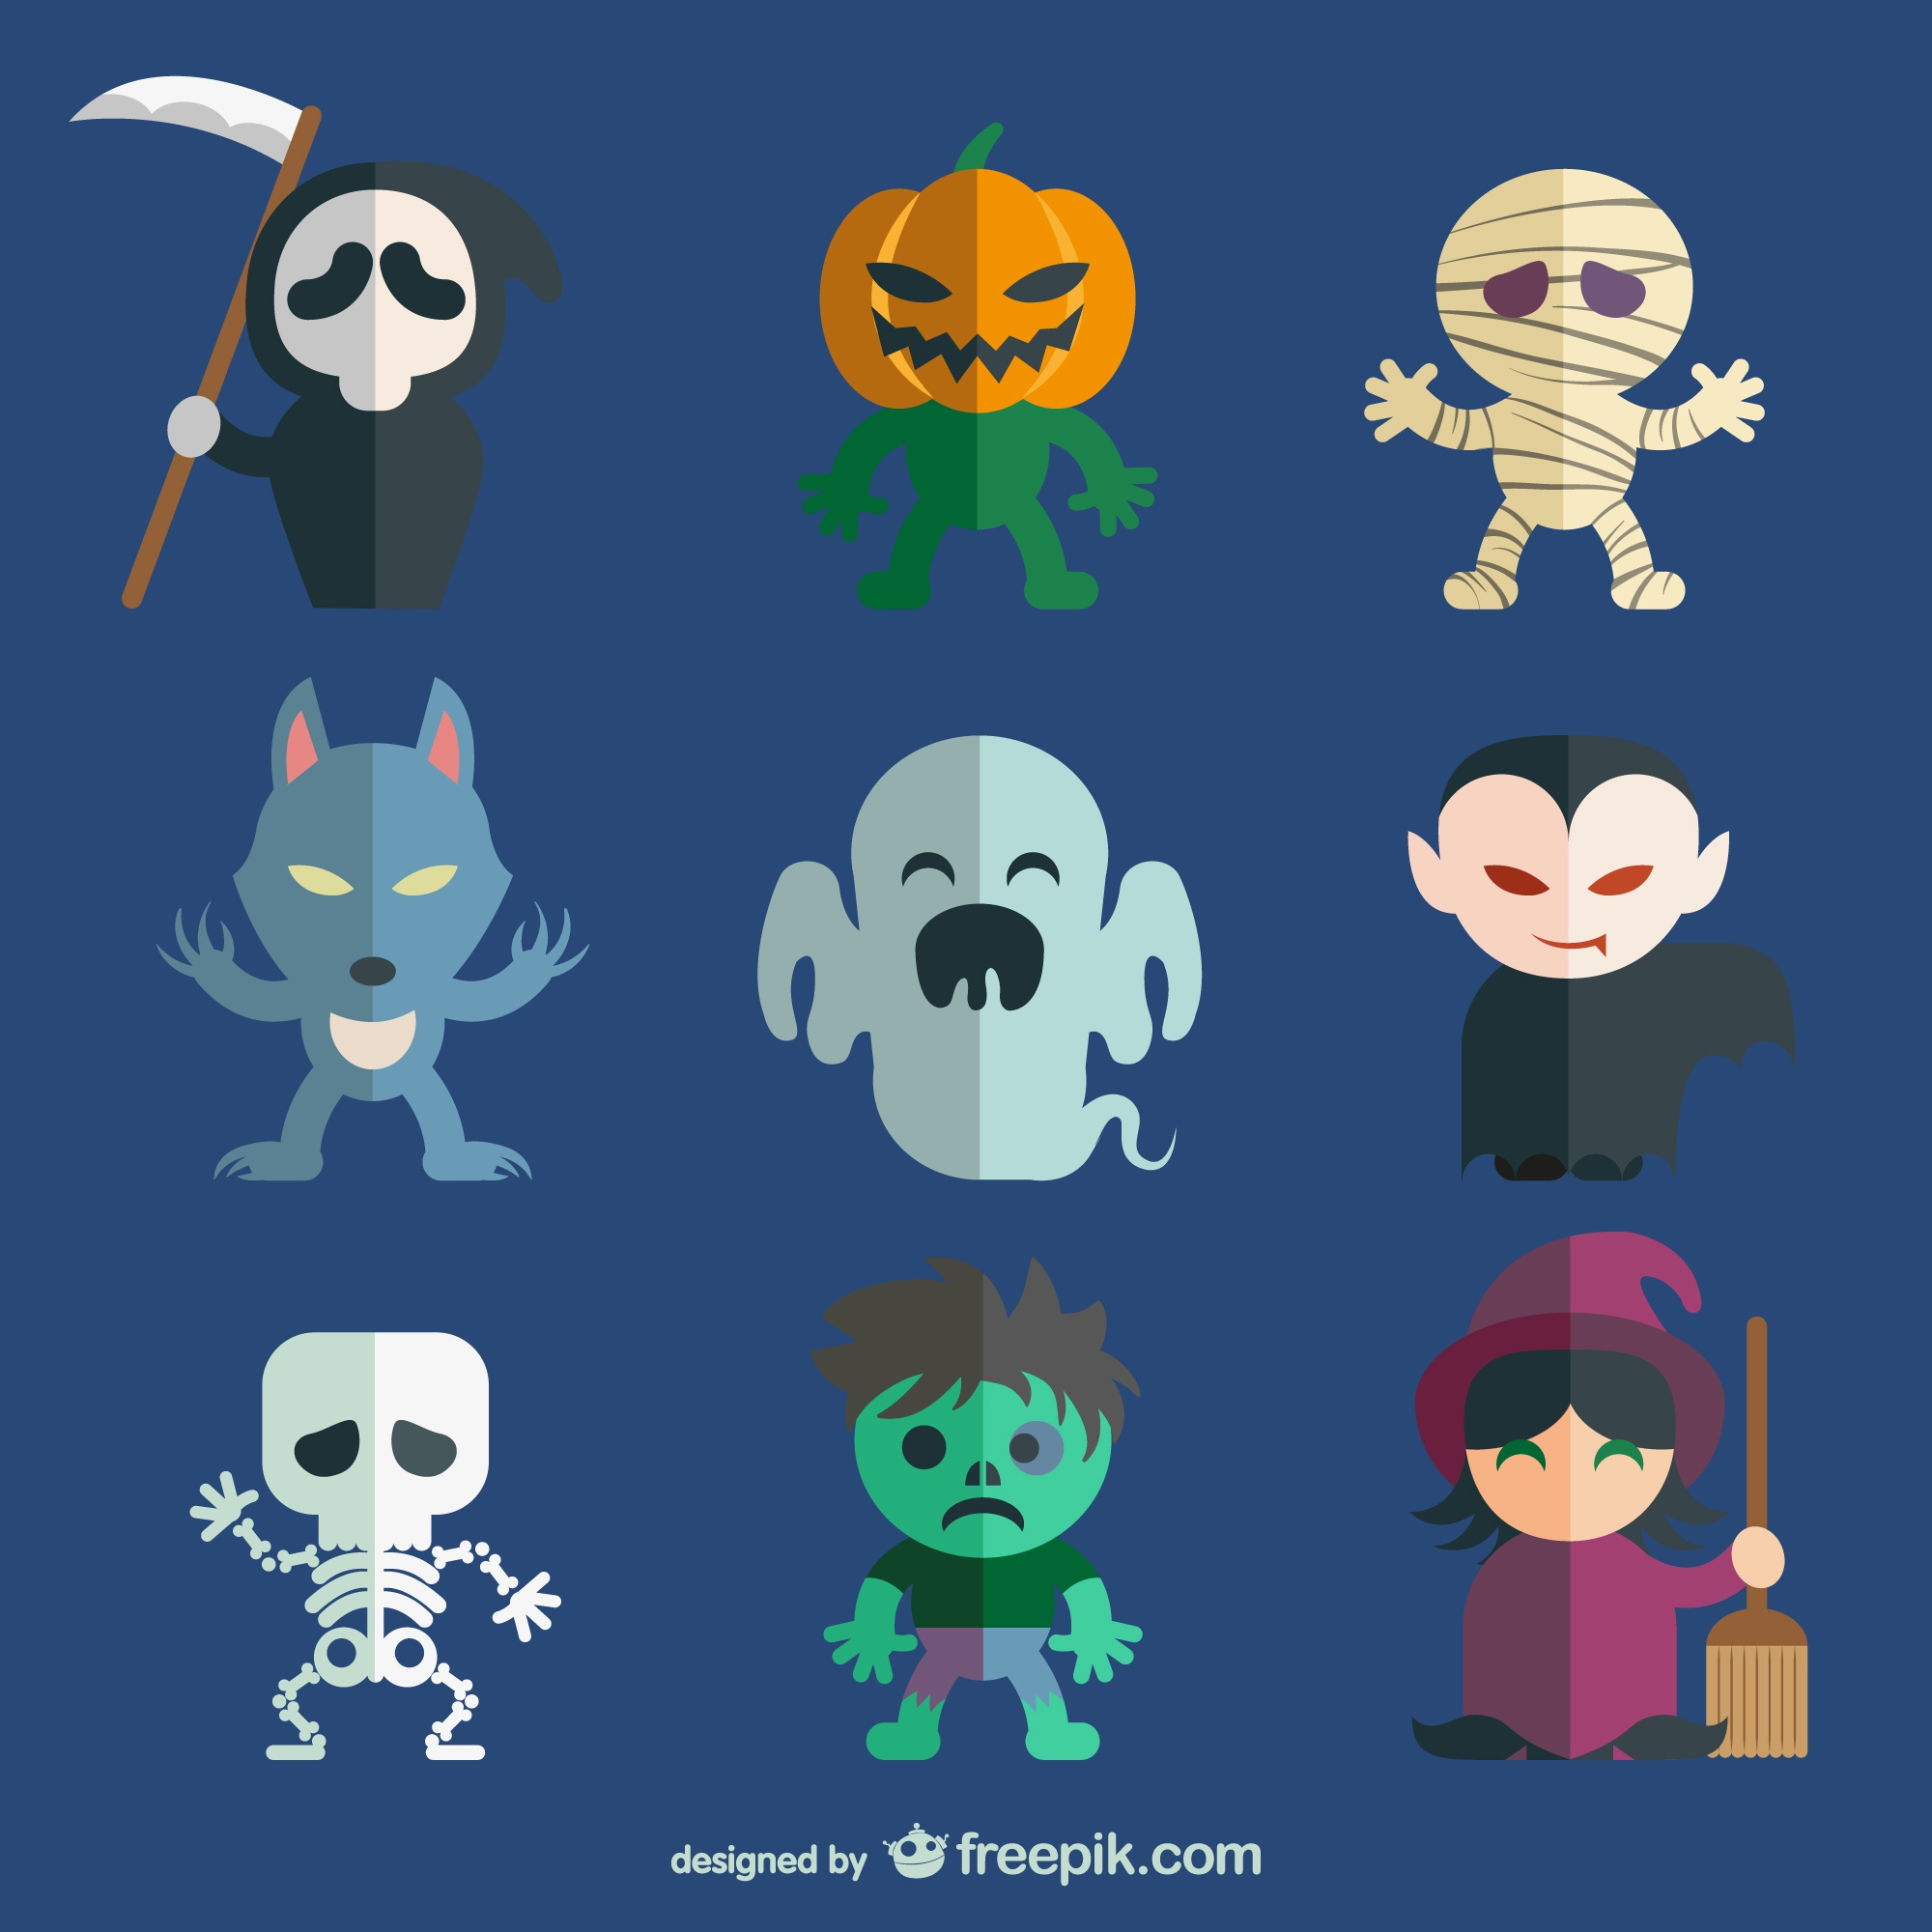 Halloween character pack